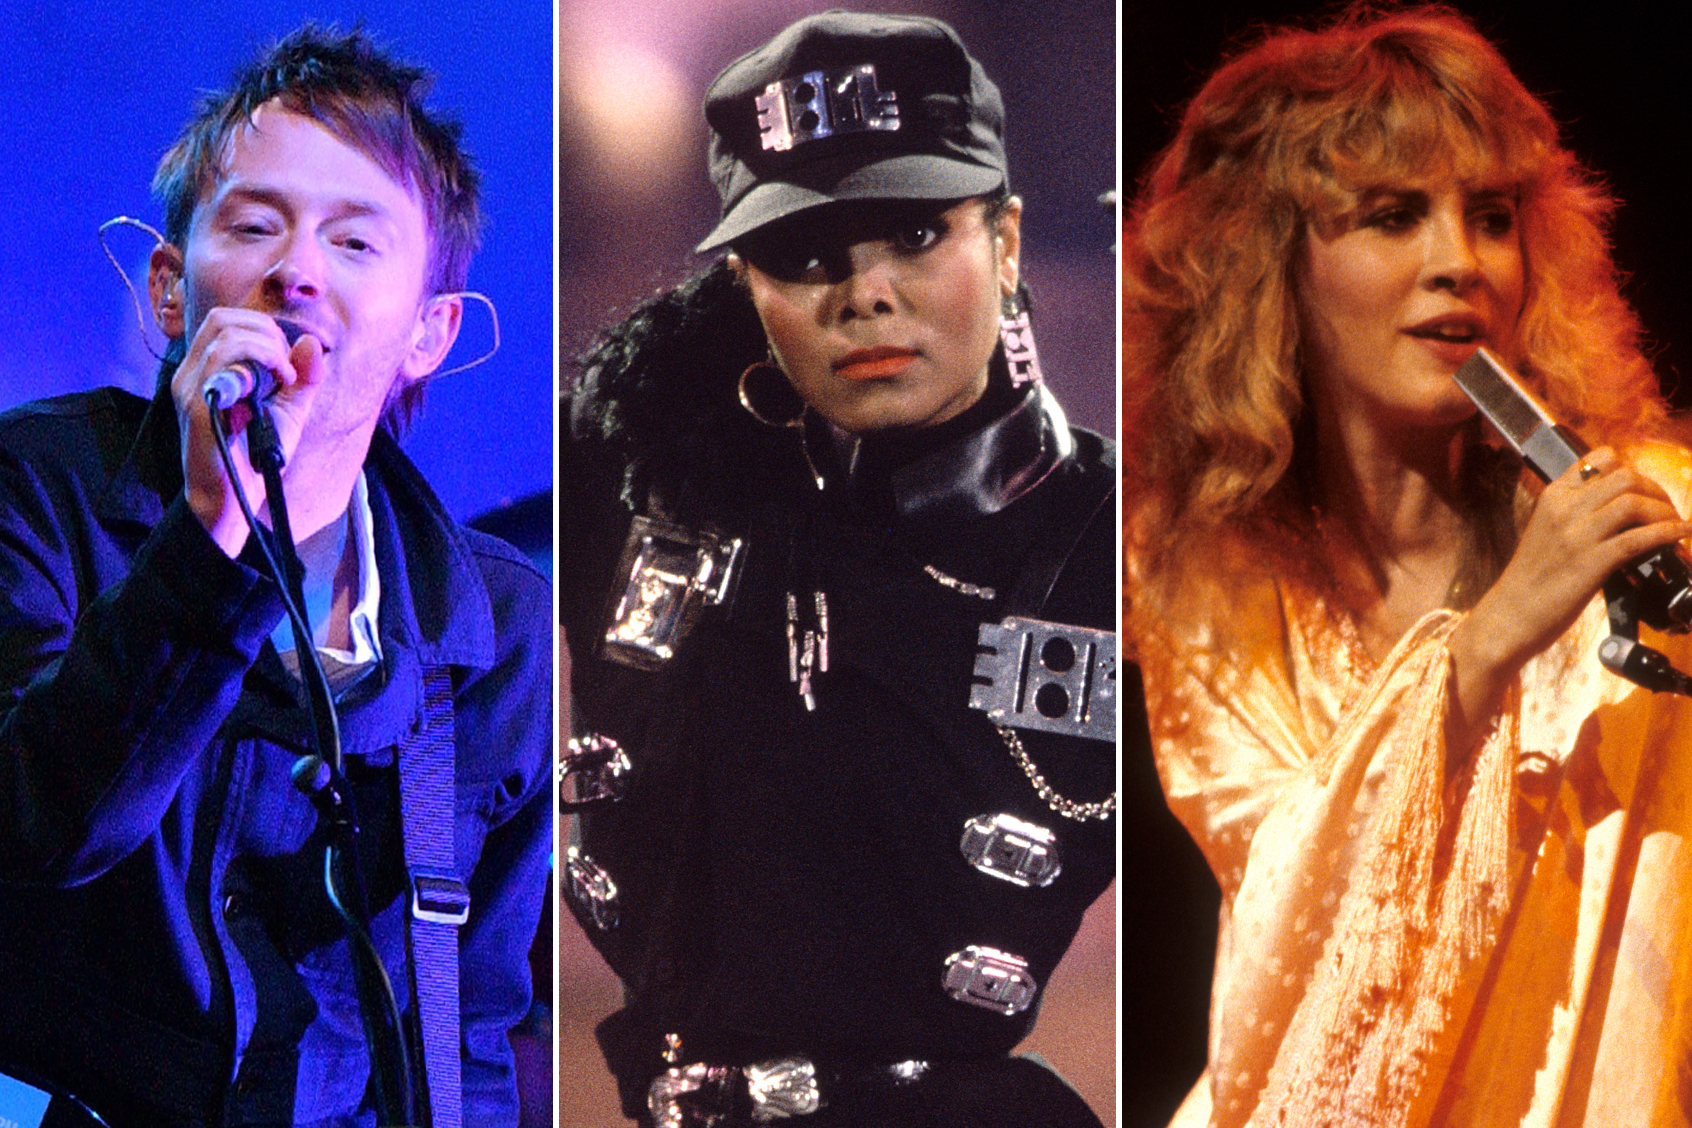 Radiohead-Janet-Jackson-Stevie-Nicks-Rock-and-Roll-Hall-of-Fame-Class-of-2019.jpg?crop=900:600&width=1910